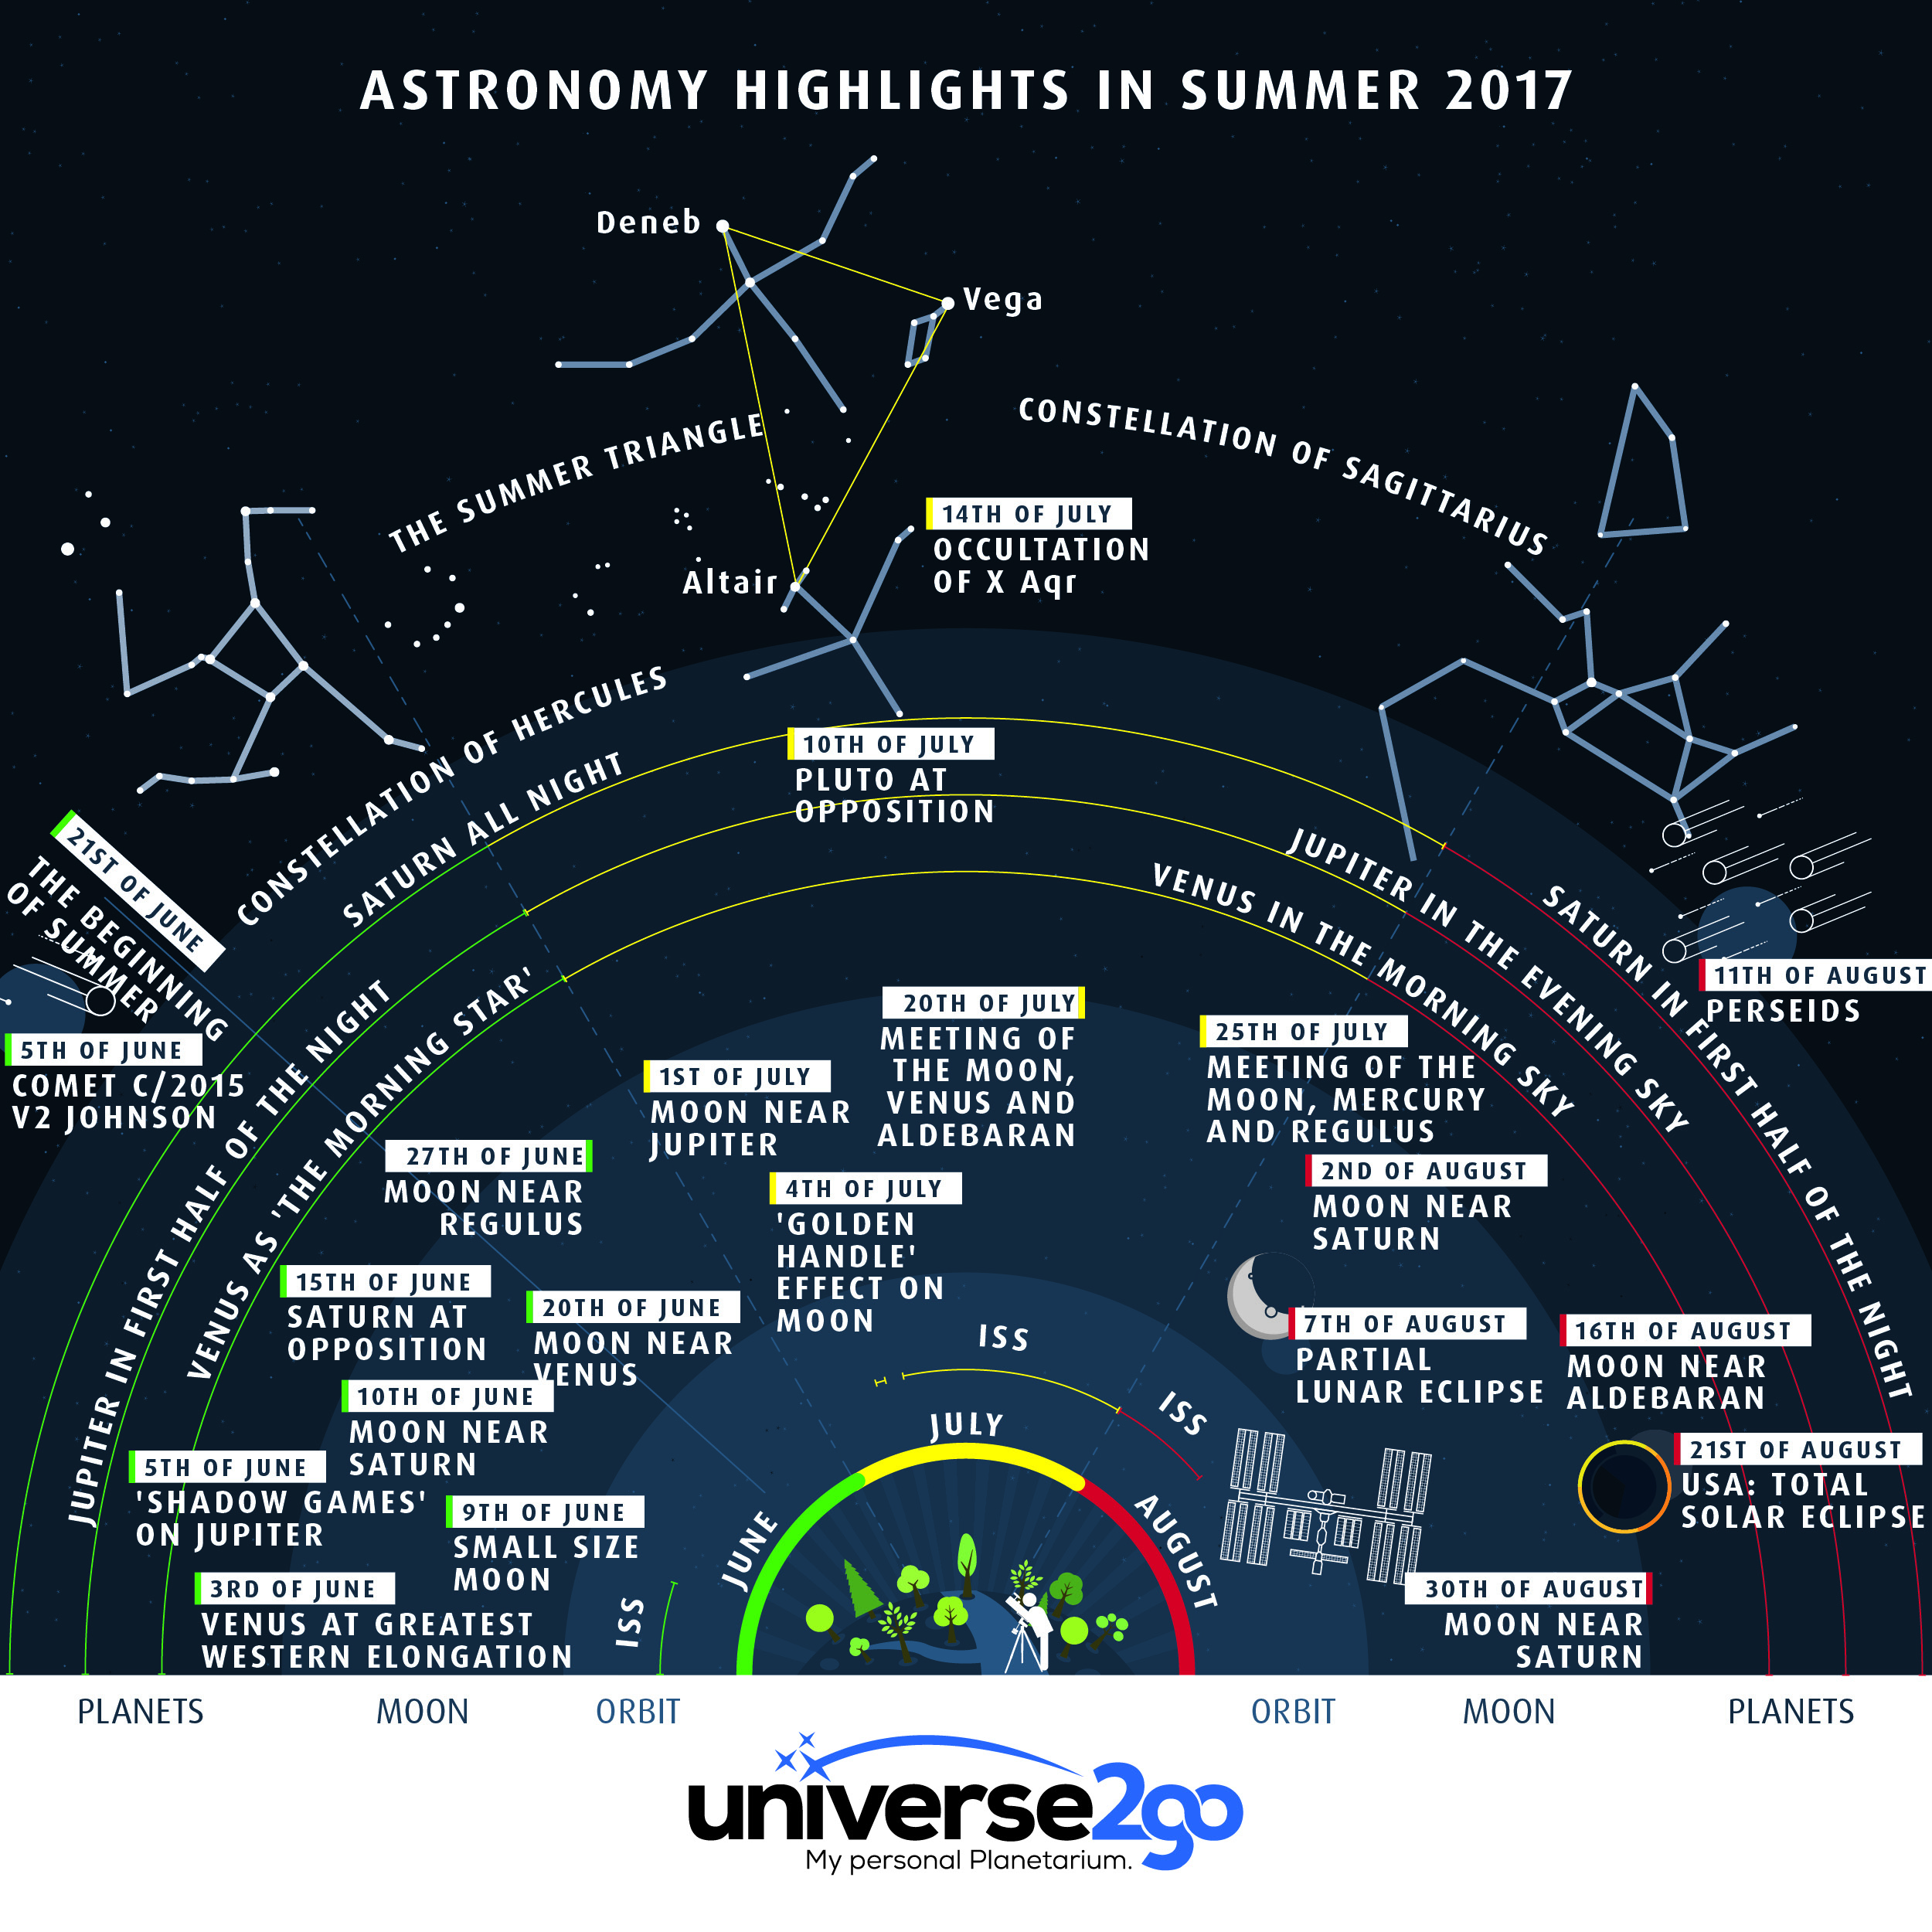 u2g-infographic-summer-2017-everything-that-you-can-see-from-June-to-august